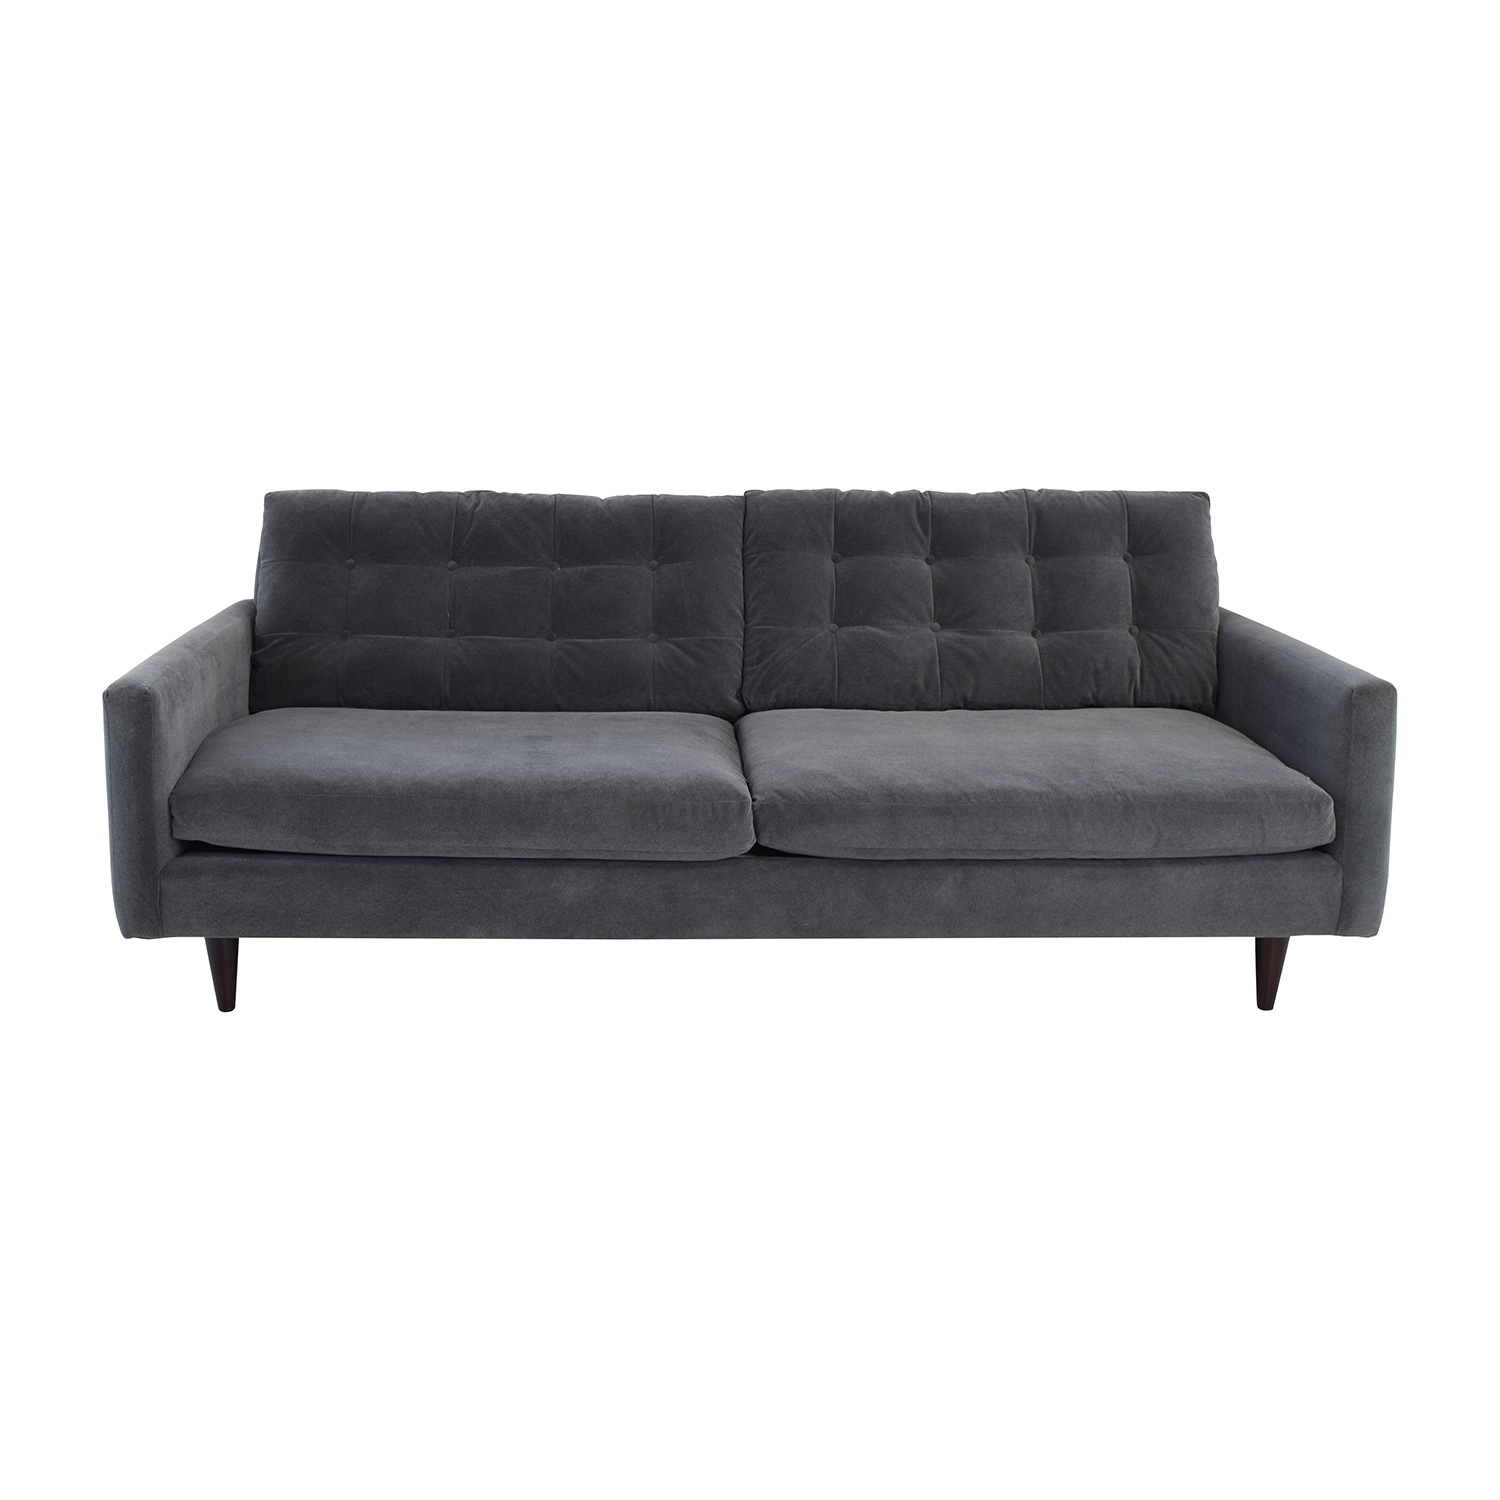 Crate & Barrel Petrie Mid Century Grey Sofa Crate and Barrel